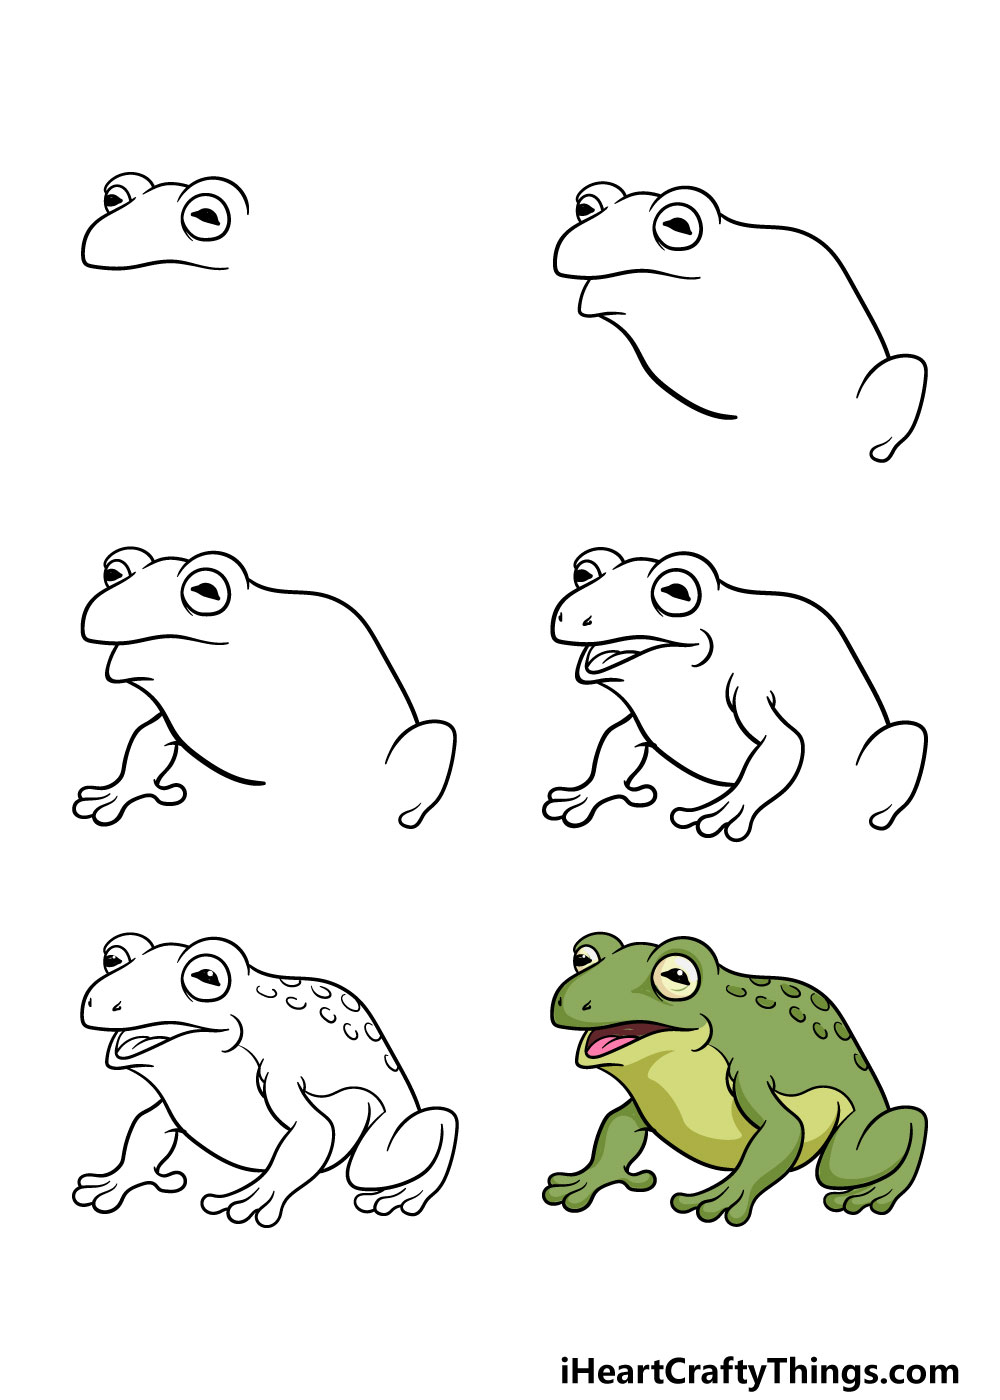 how to draw a toad in 6 steps